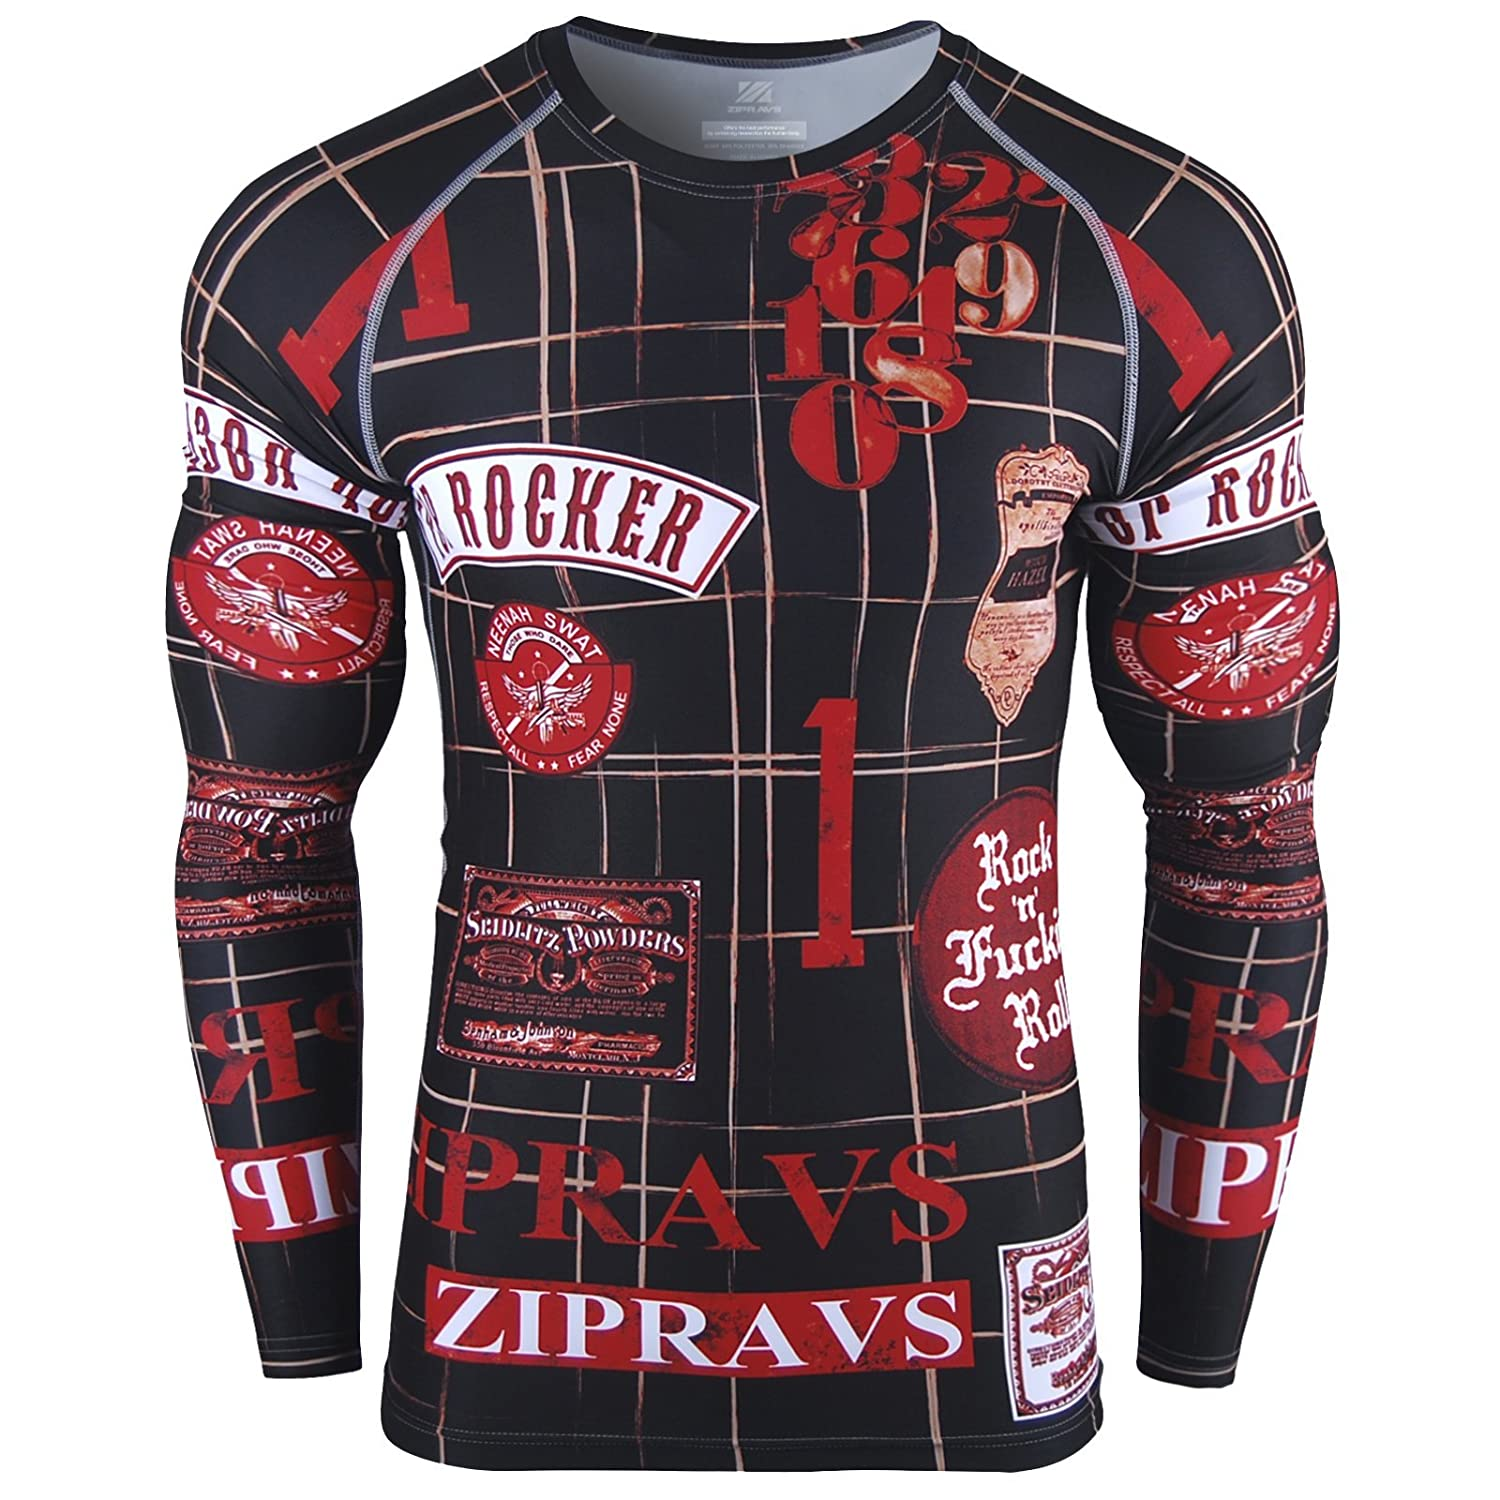 Image of Zipravs Rash Guard ROCKER